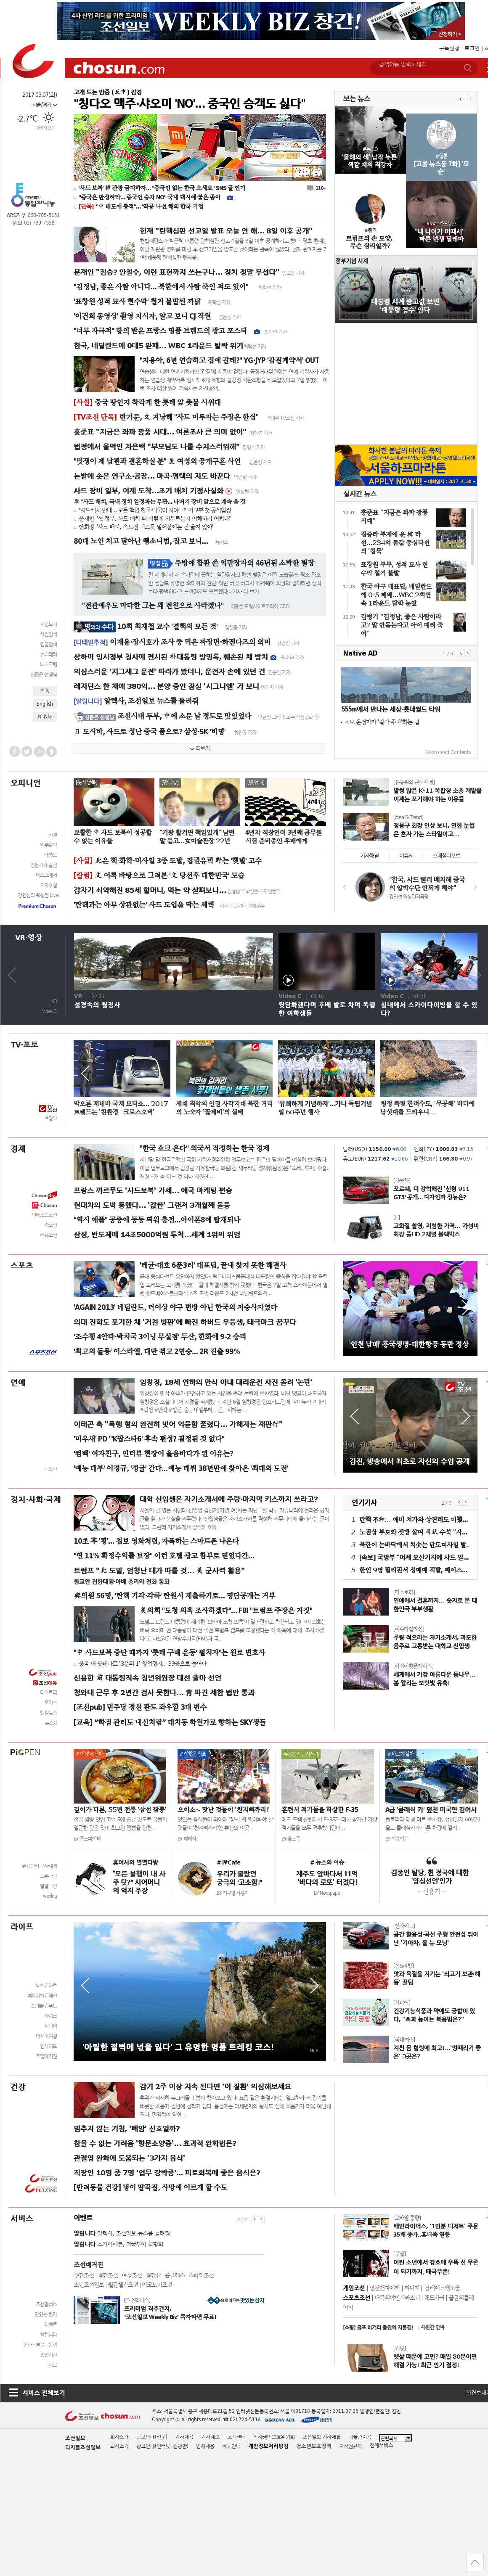 chosun.com at Tuesday March 7, 2017, 2:03 p.m. UTC